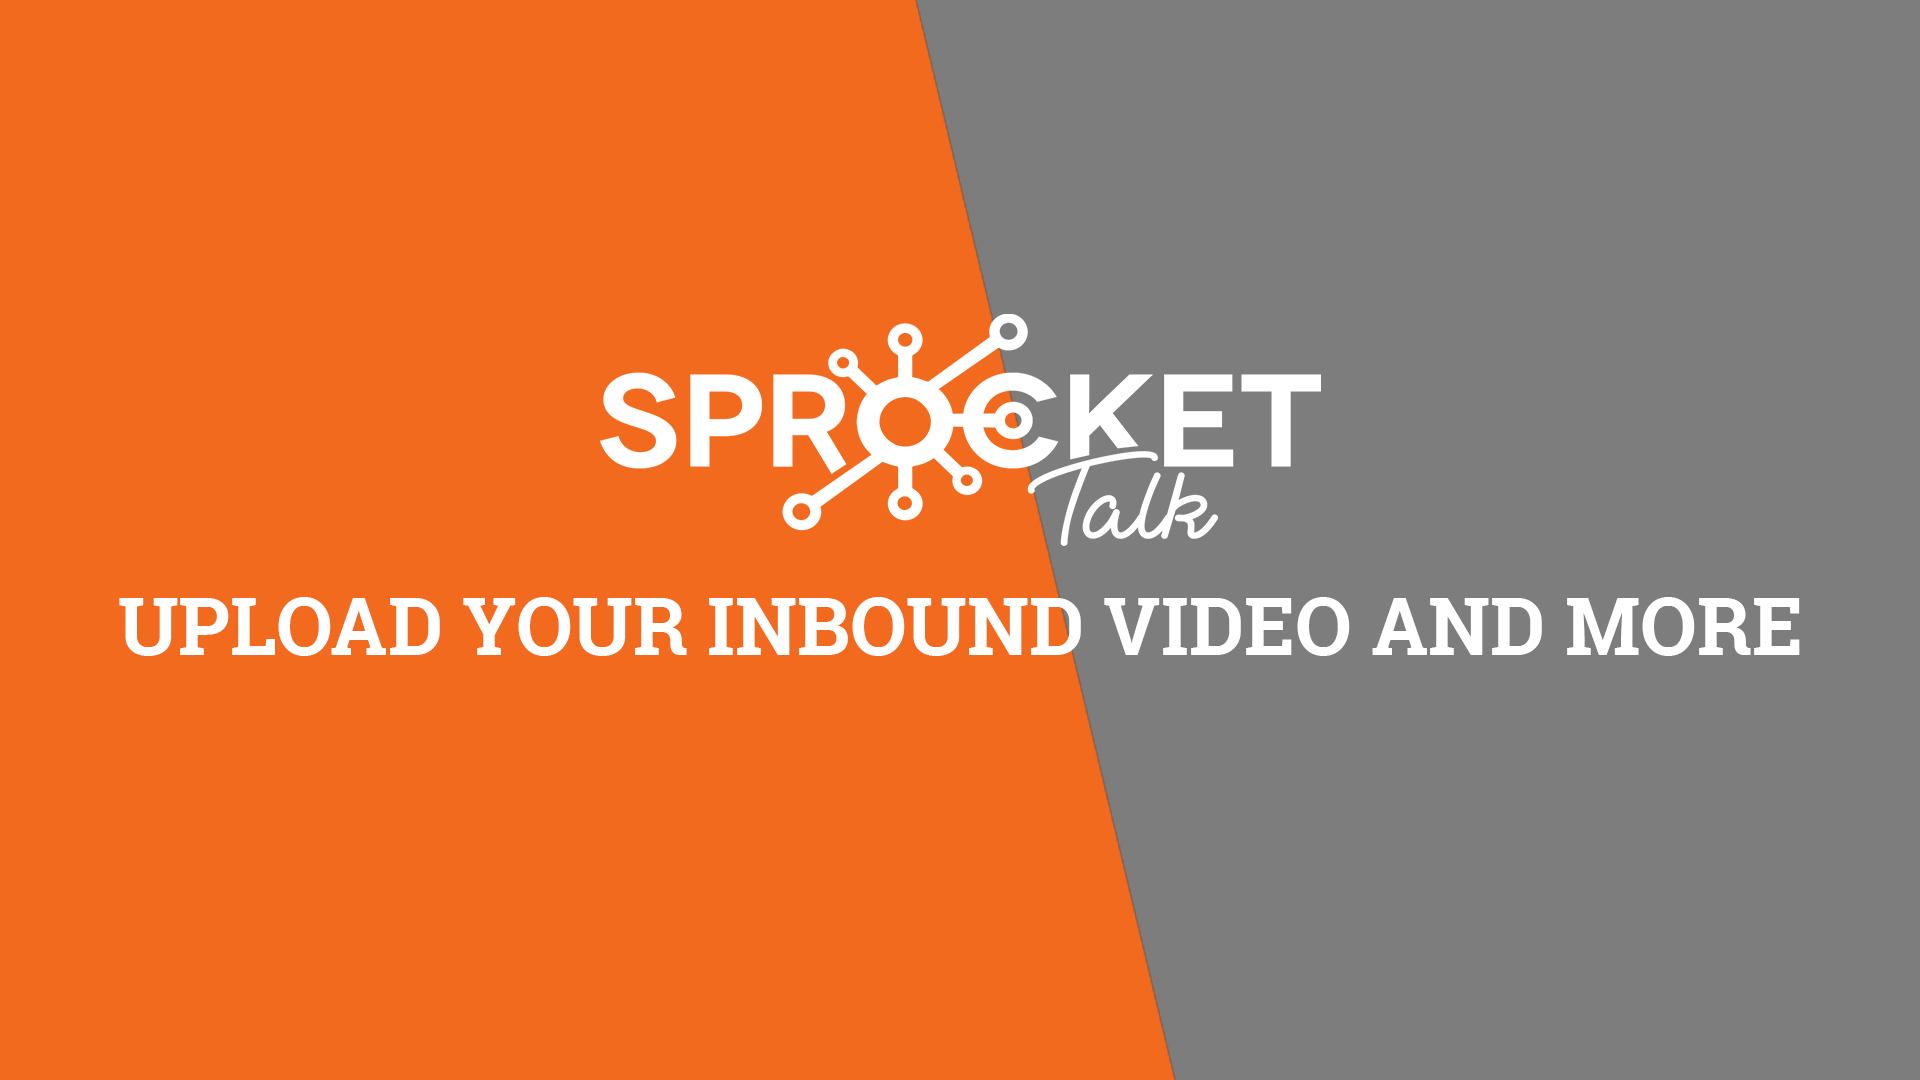 Upload Your Inbound Video And More